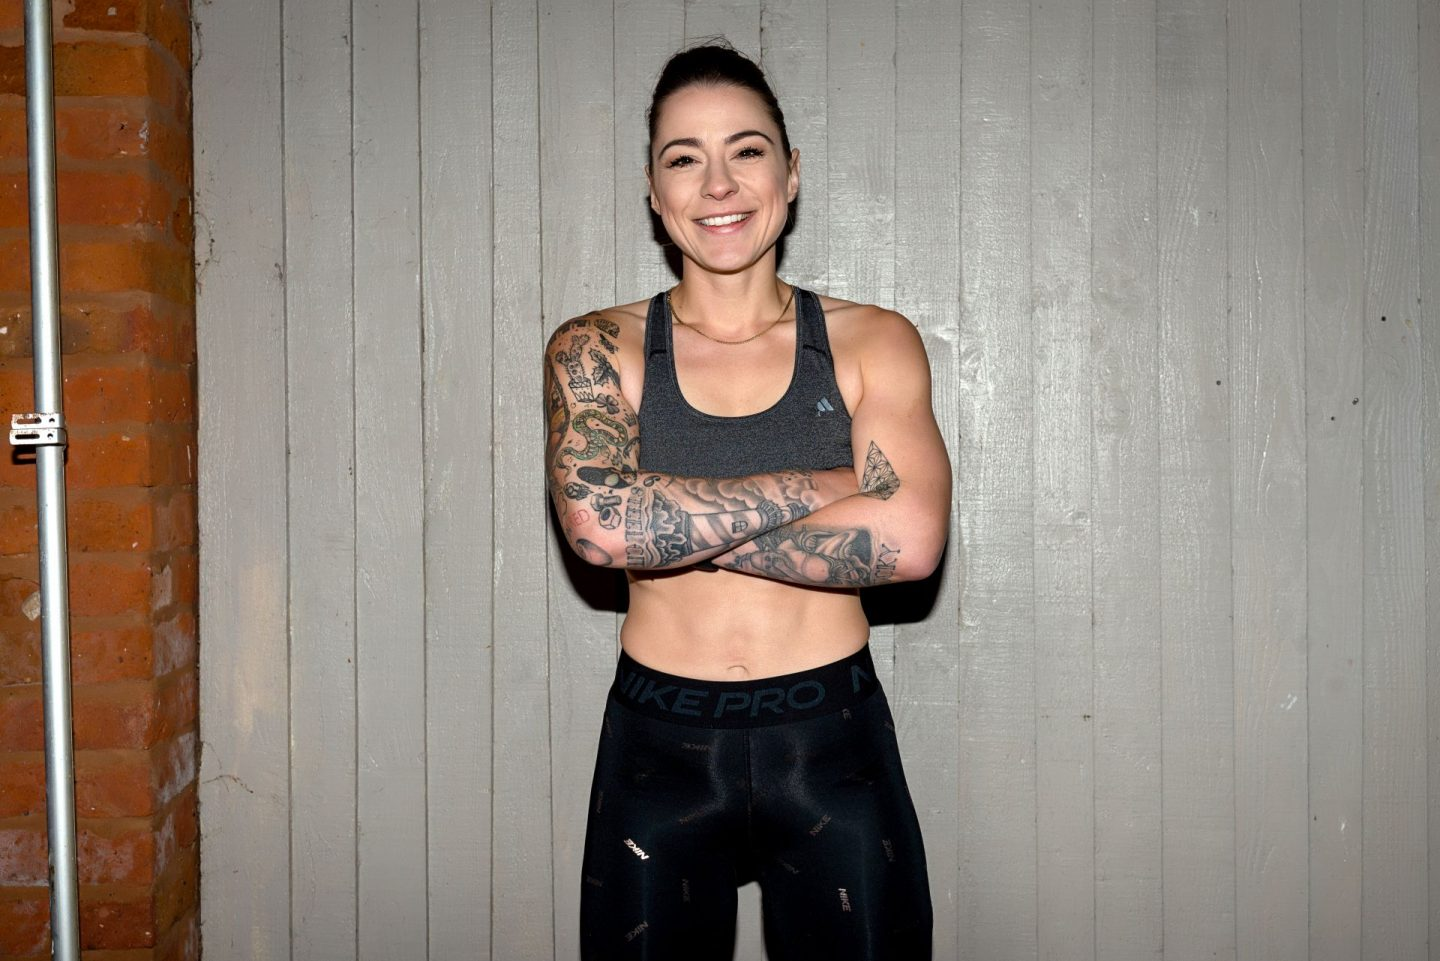 Singer songwriter Lucy Spraggan during fitness workout.